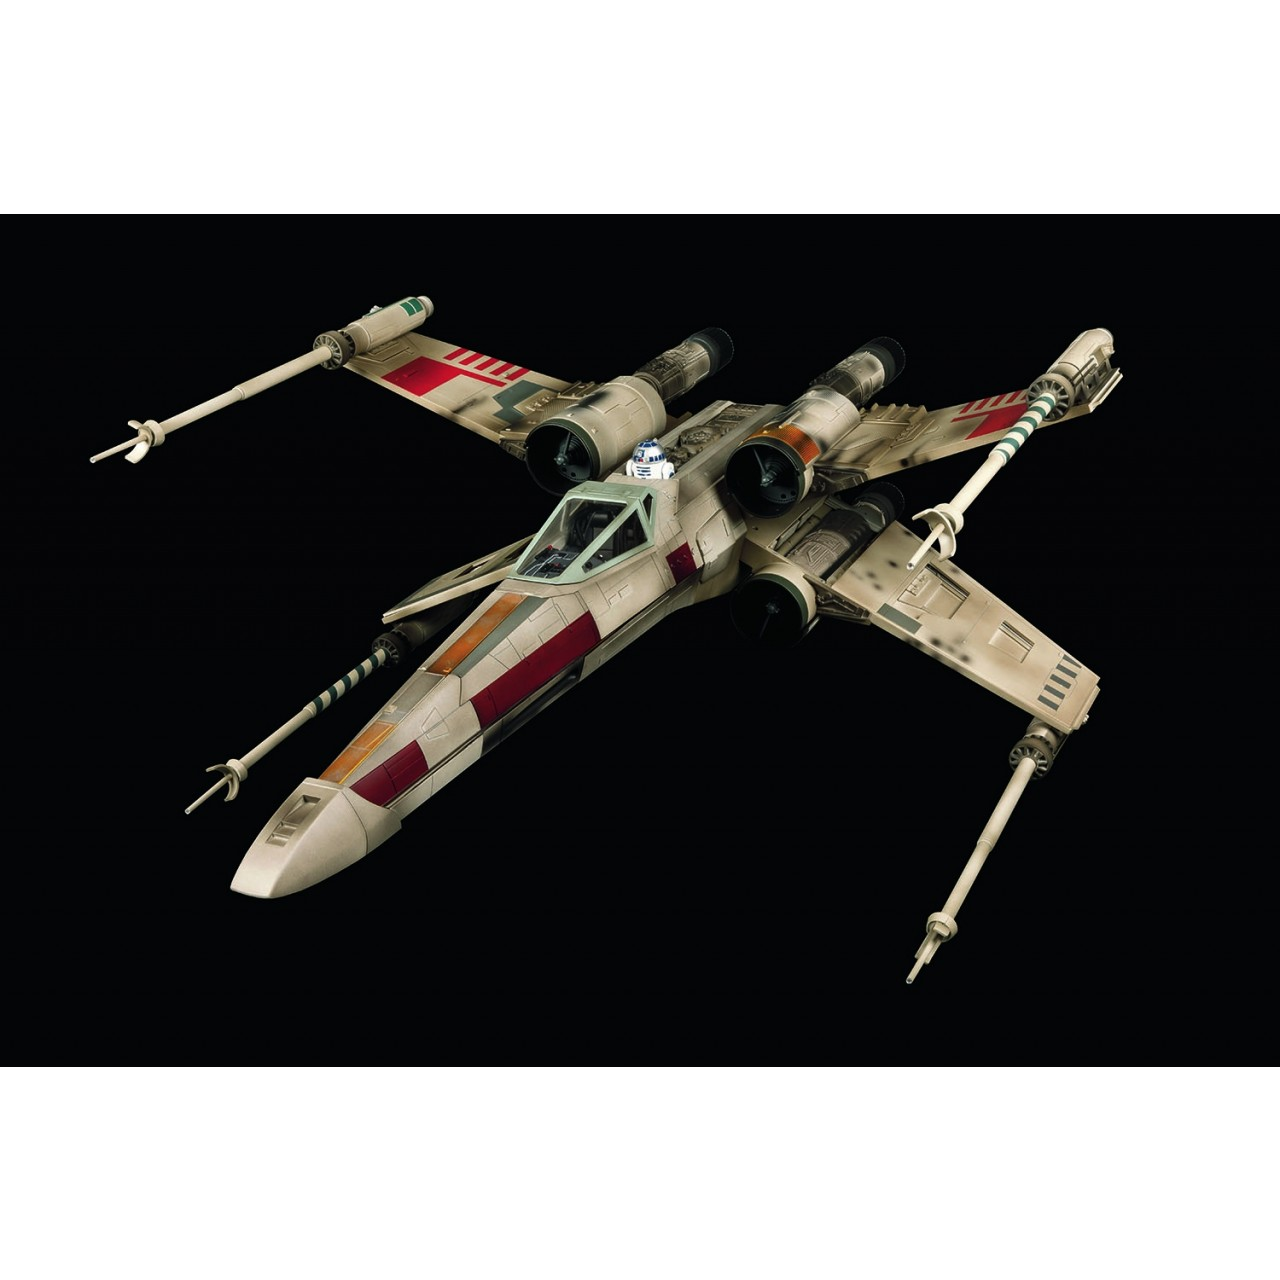 Build The Star Wars X Wing Model